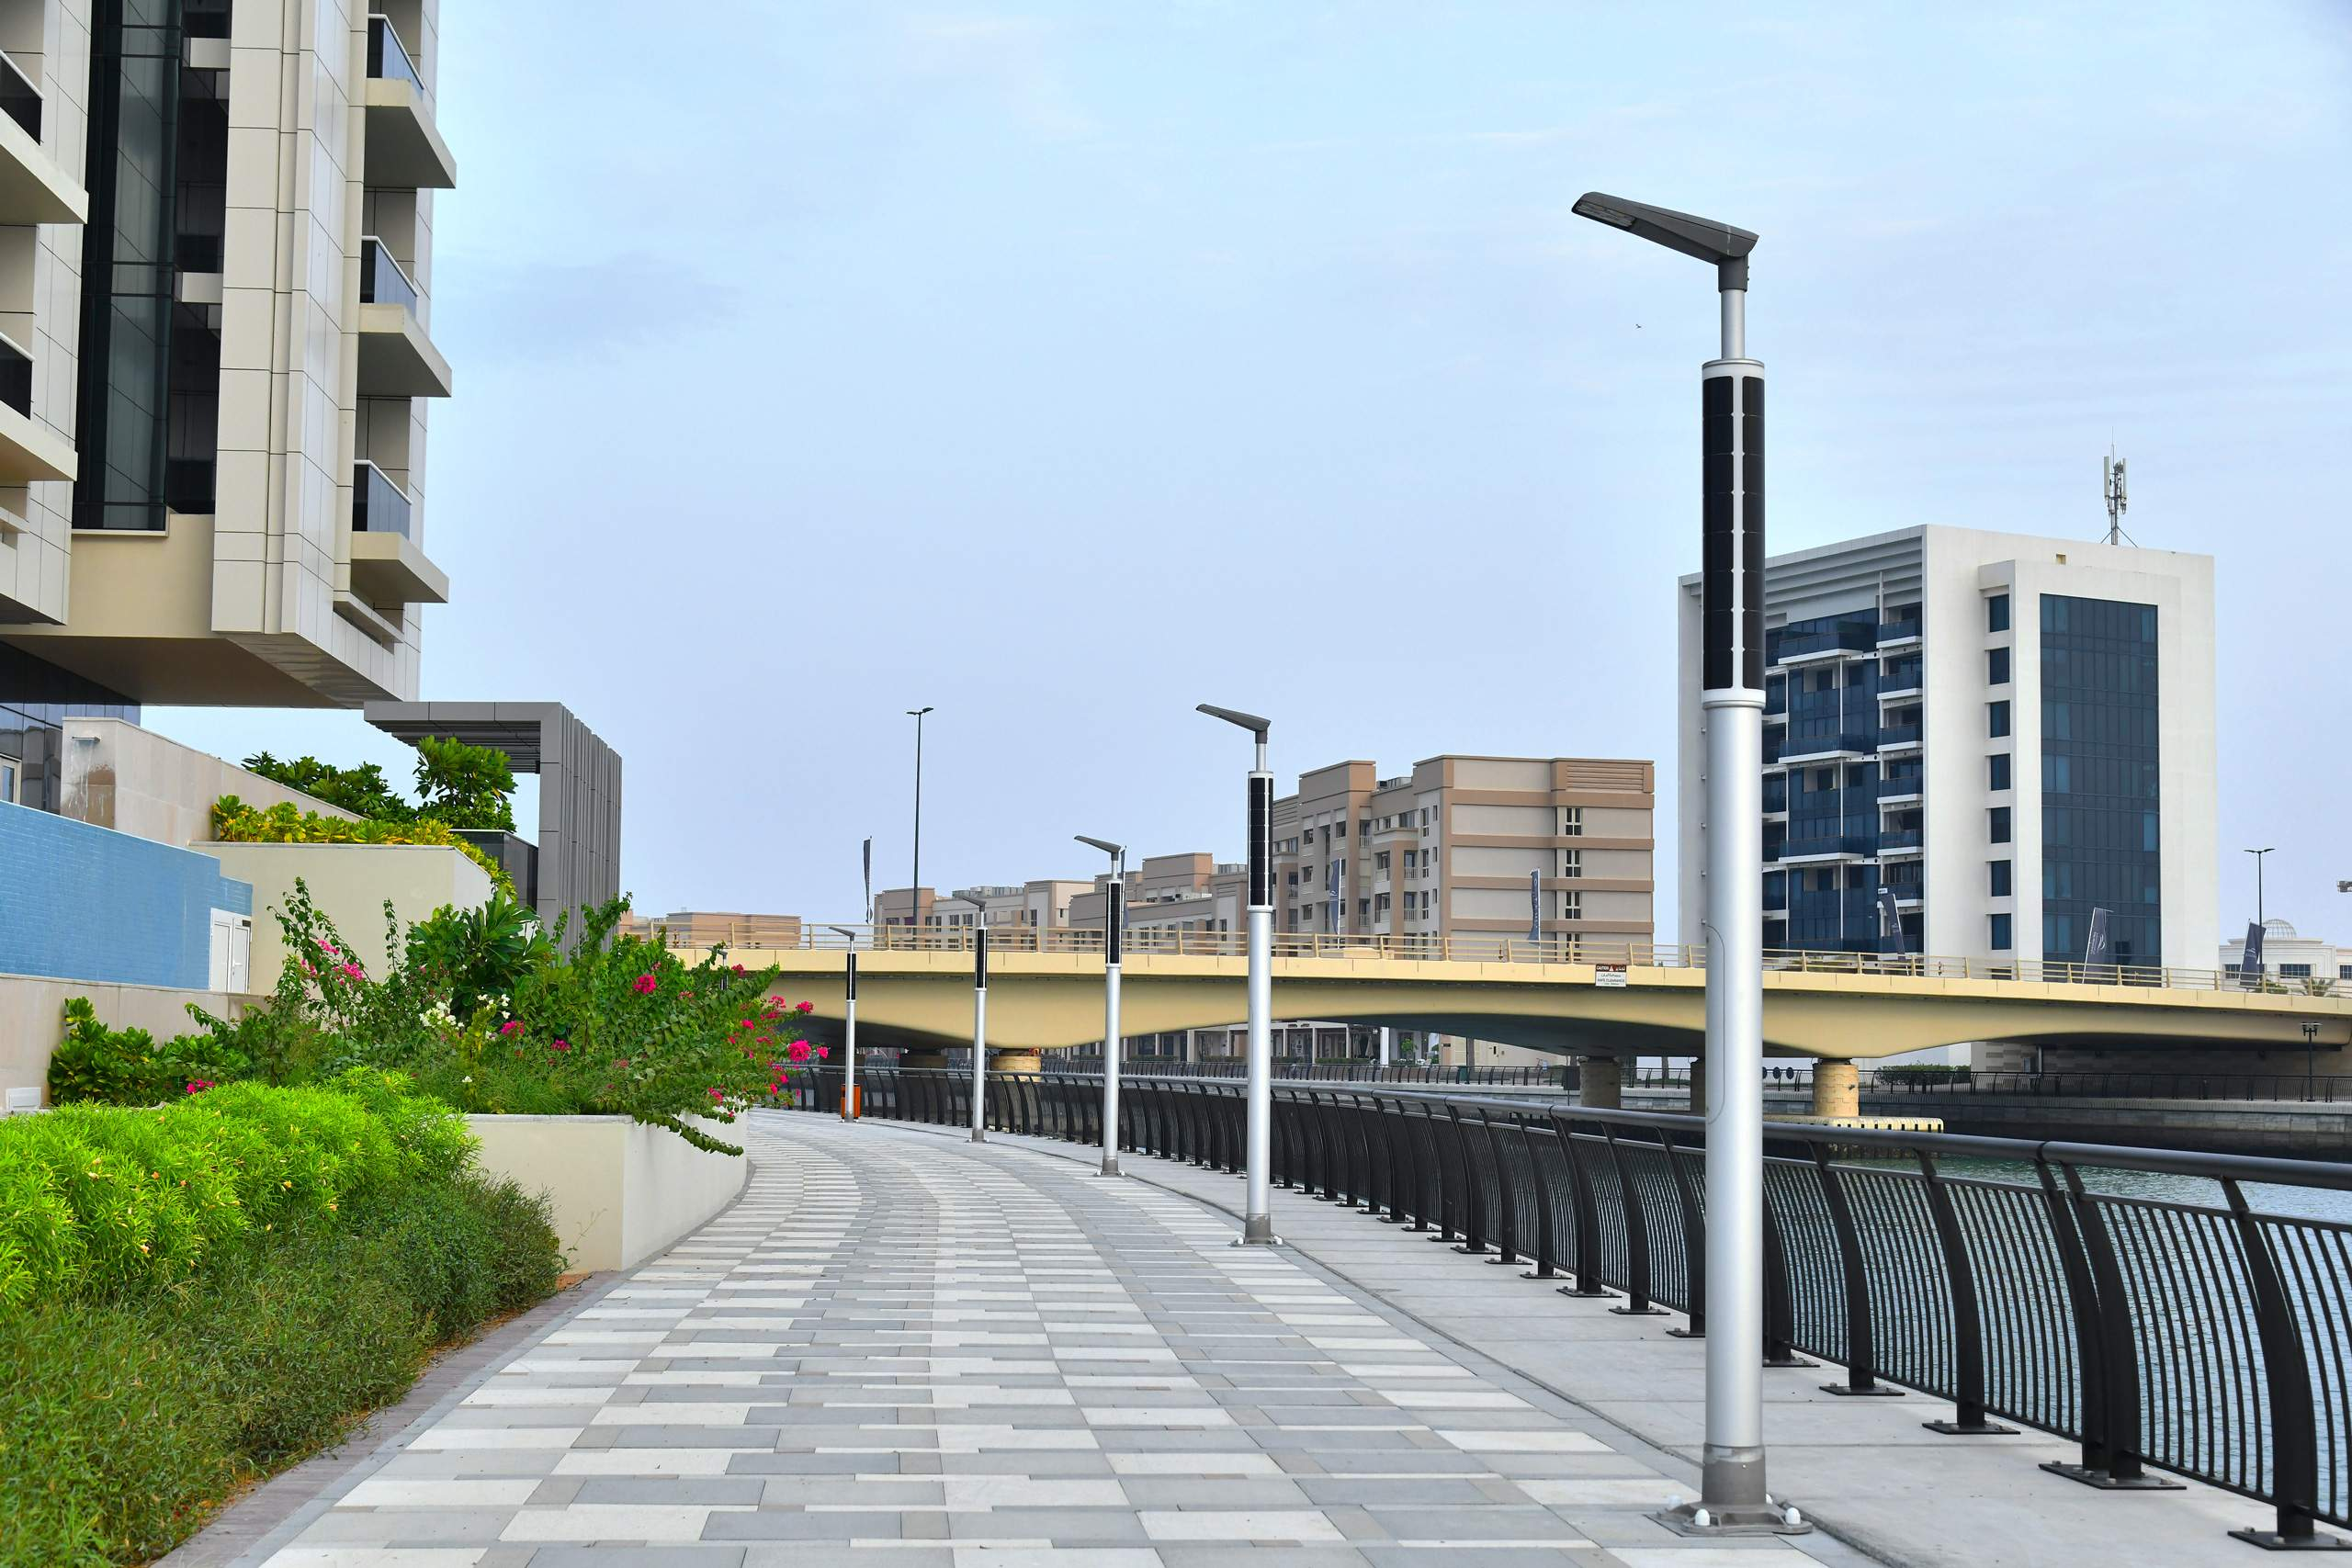 Solar-powered boulevard masts